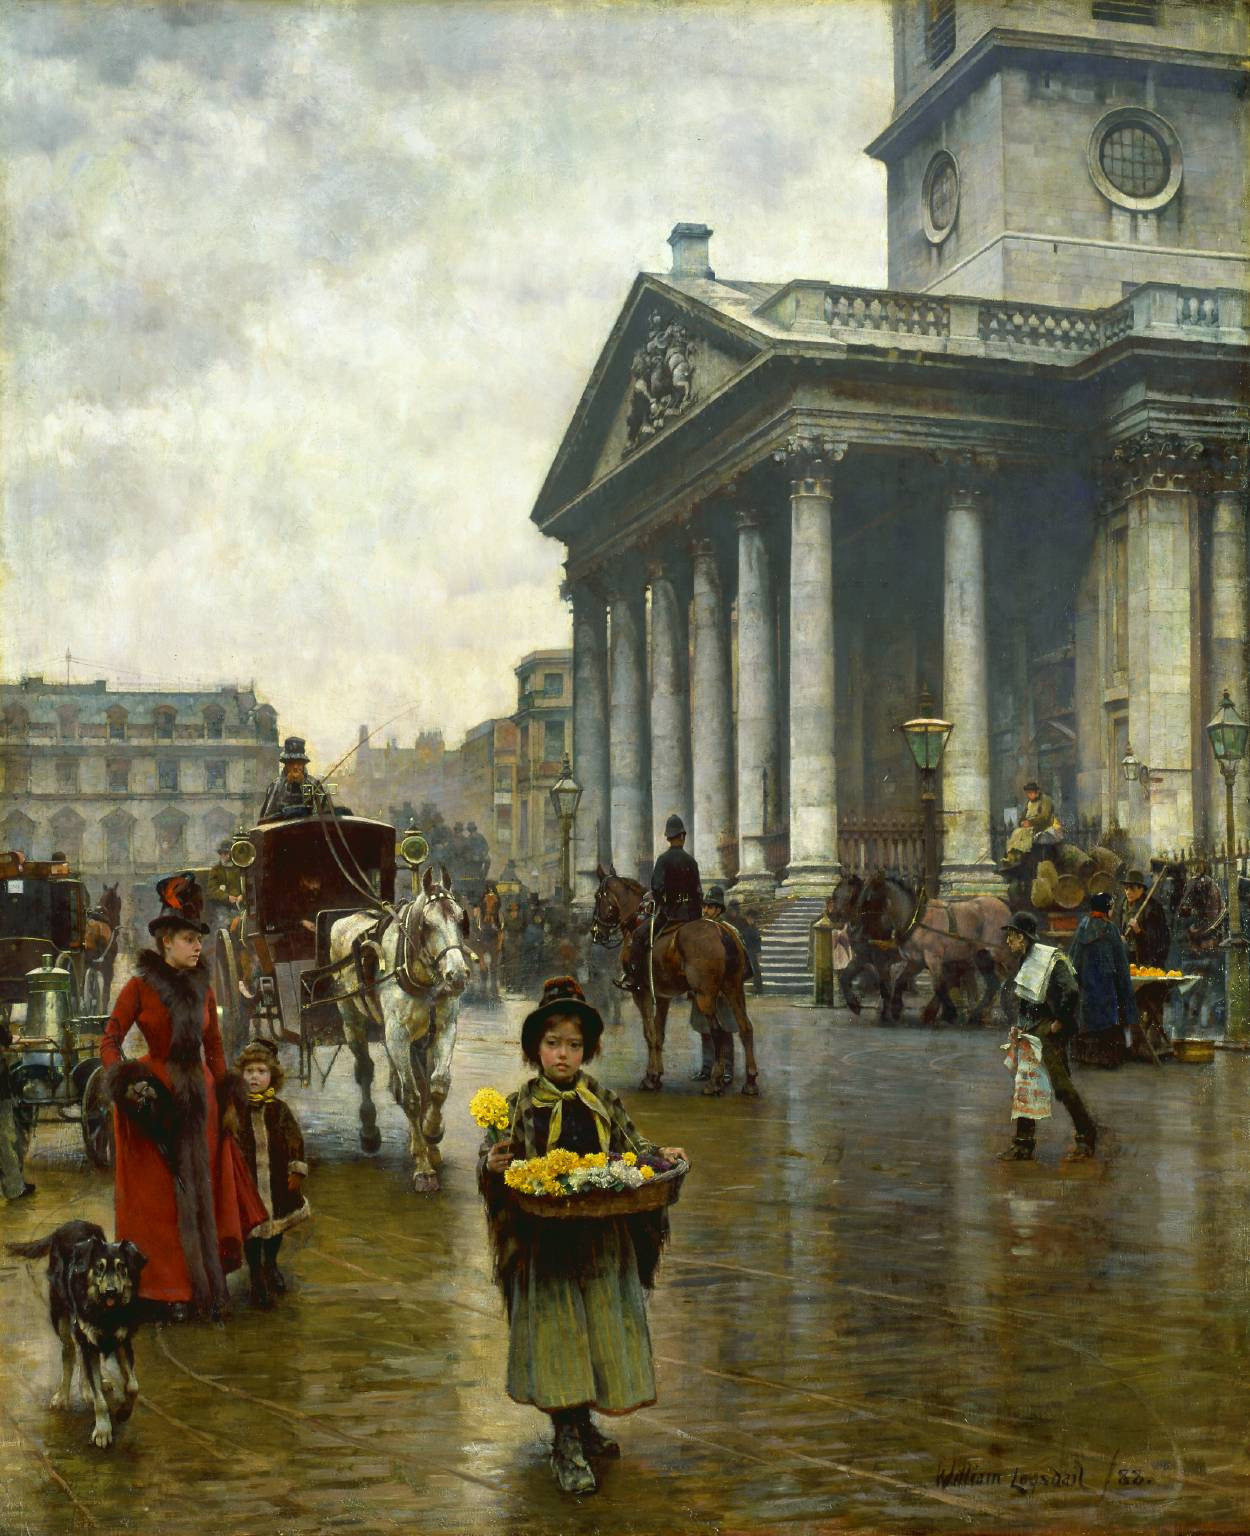 St Martin-in-the-Fields by William Logsdail, 1888